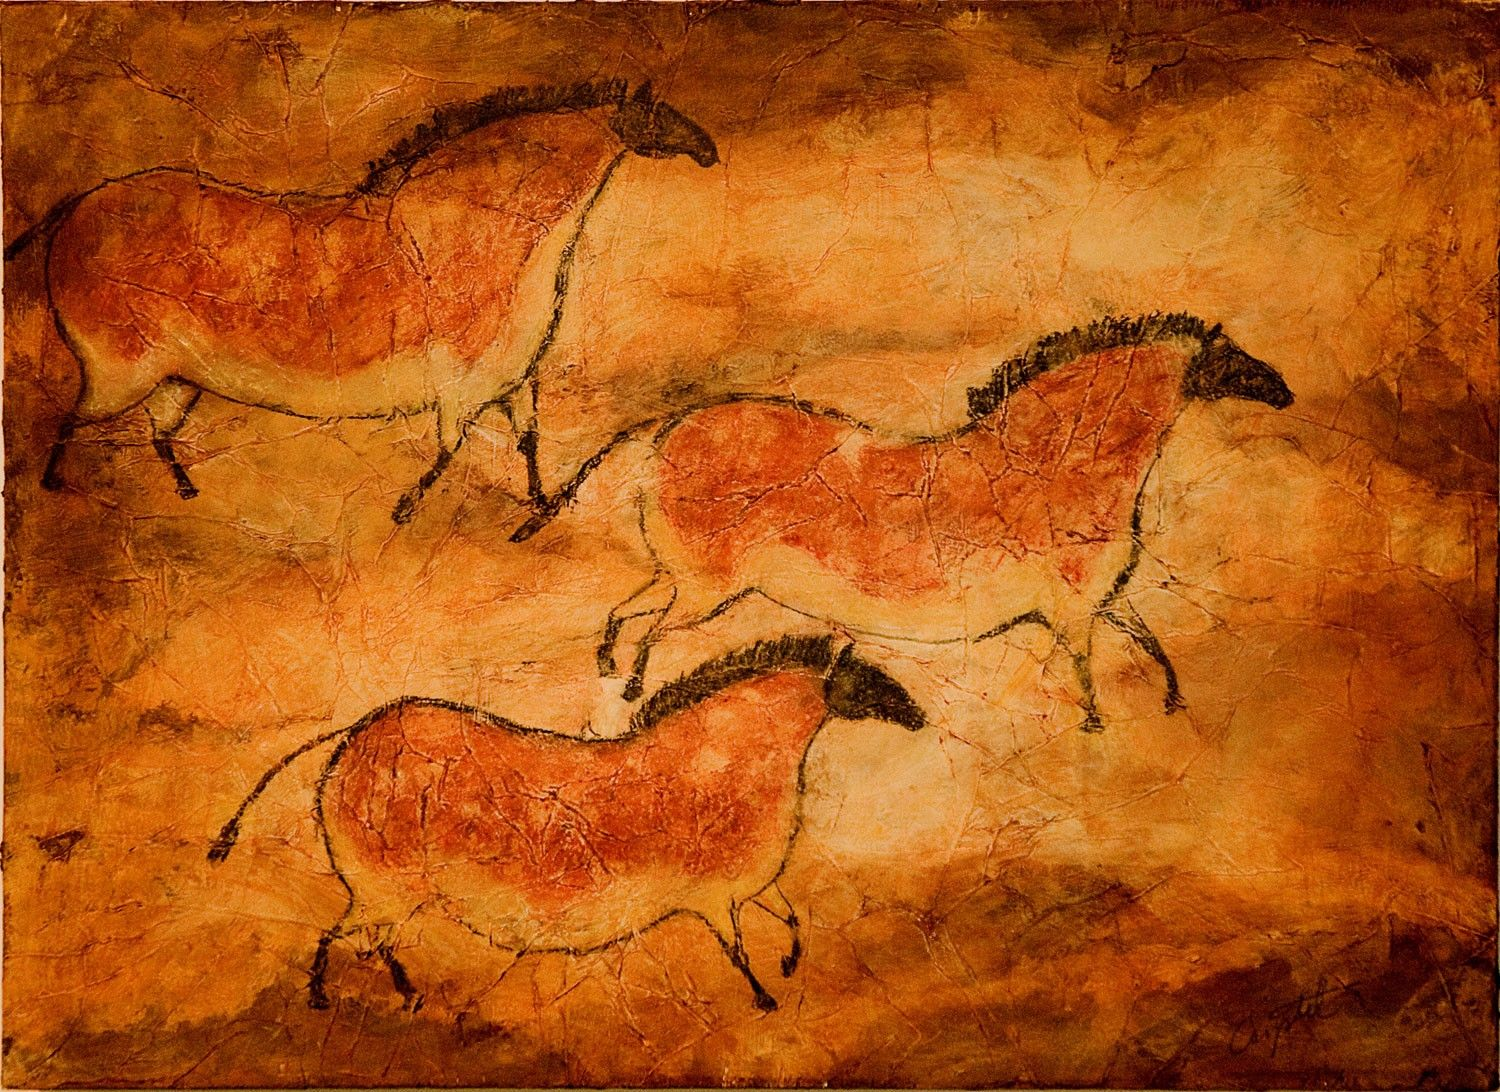 Cave Art Series Three Ponies 8x10 Print Of Prehistoric